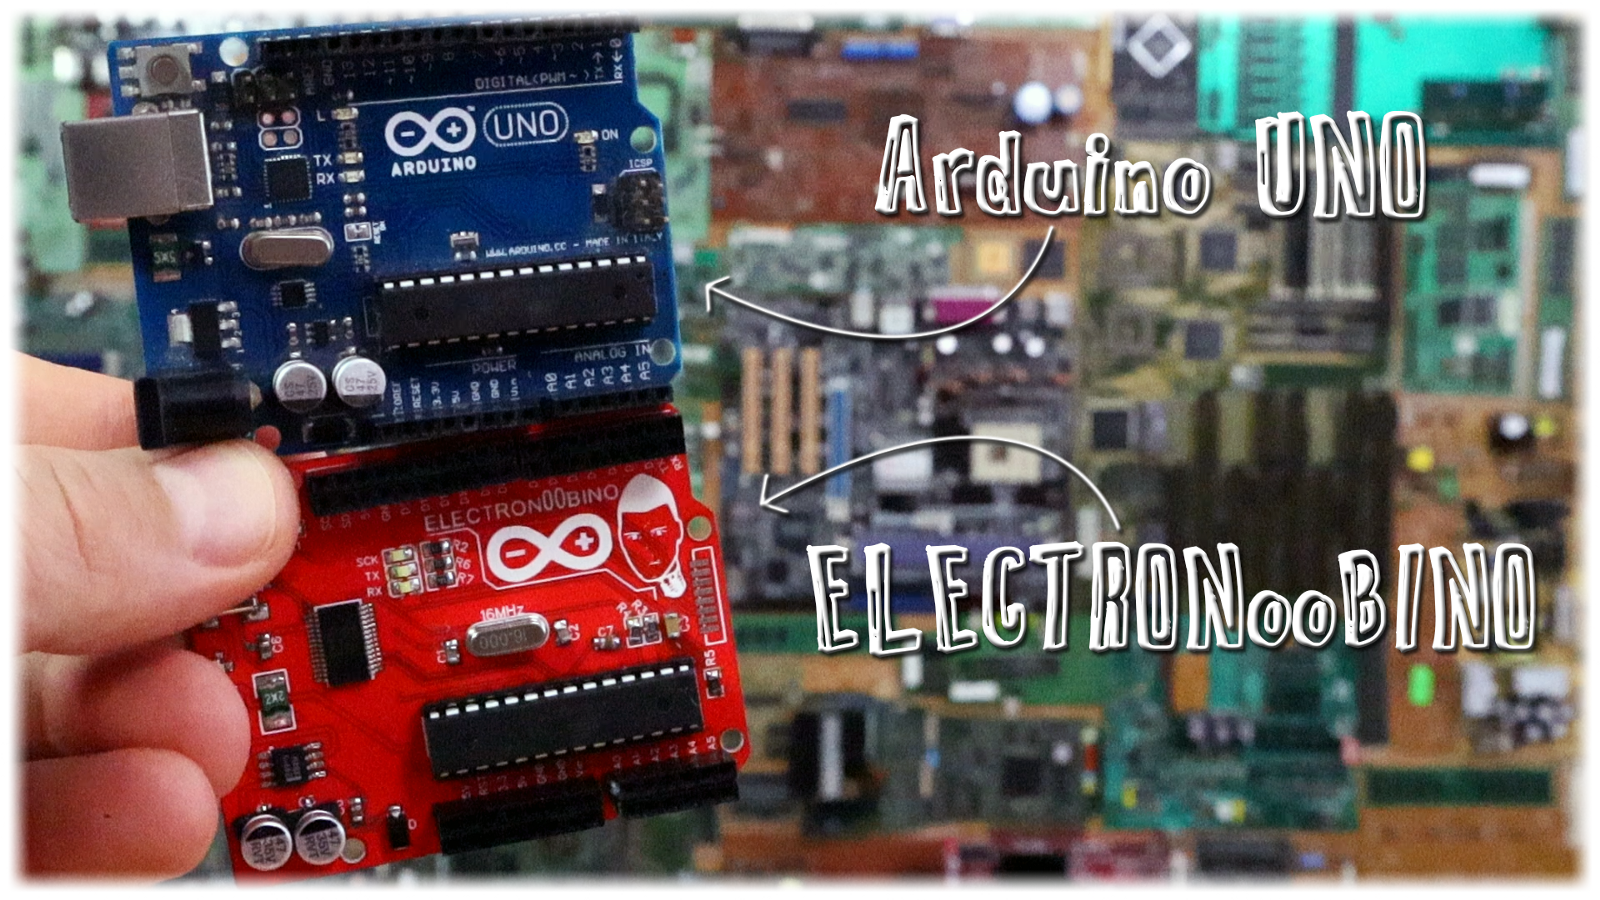 Electronoobs Will Teach You How To Build Your Own Custom Arduino Uno Design Wallpaper On Circuit Board Determine What Additional Parts Want Add The Standard Bom Bill Of Materials Then Can Modify Schematic With Easyeda